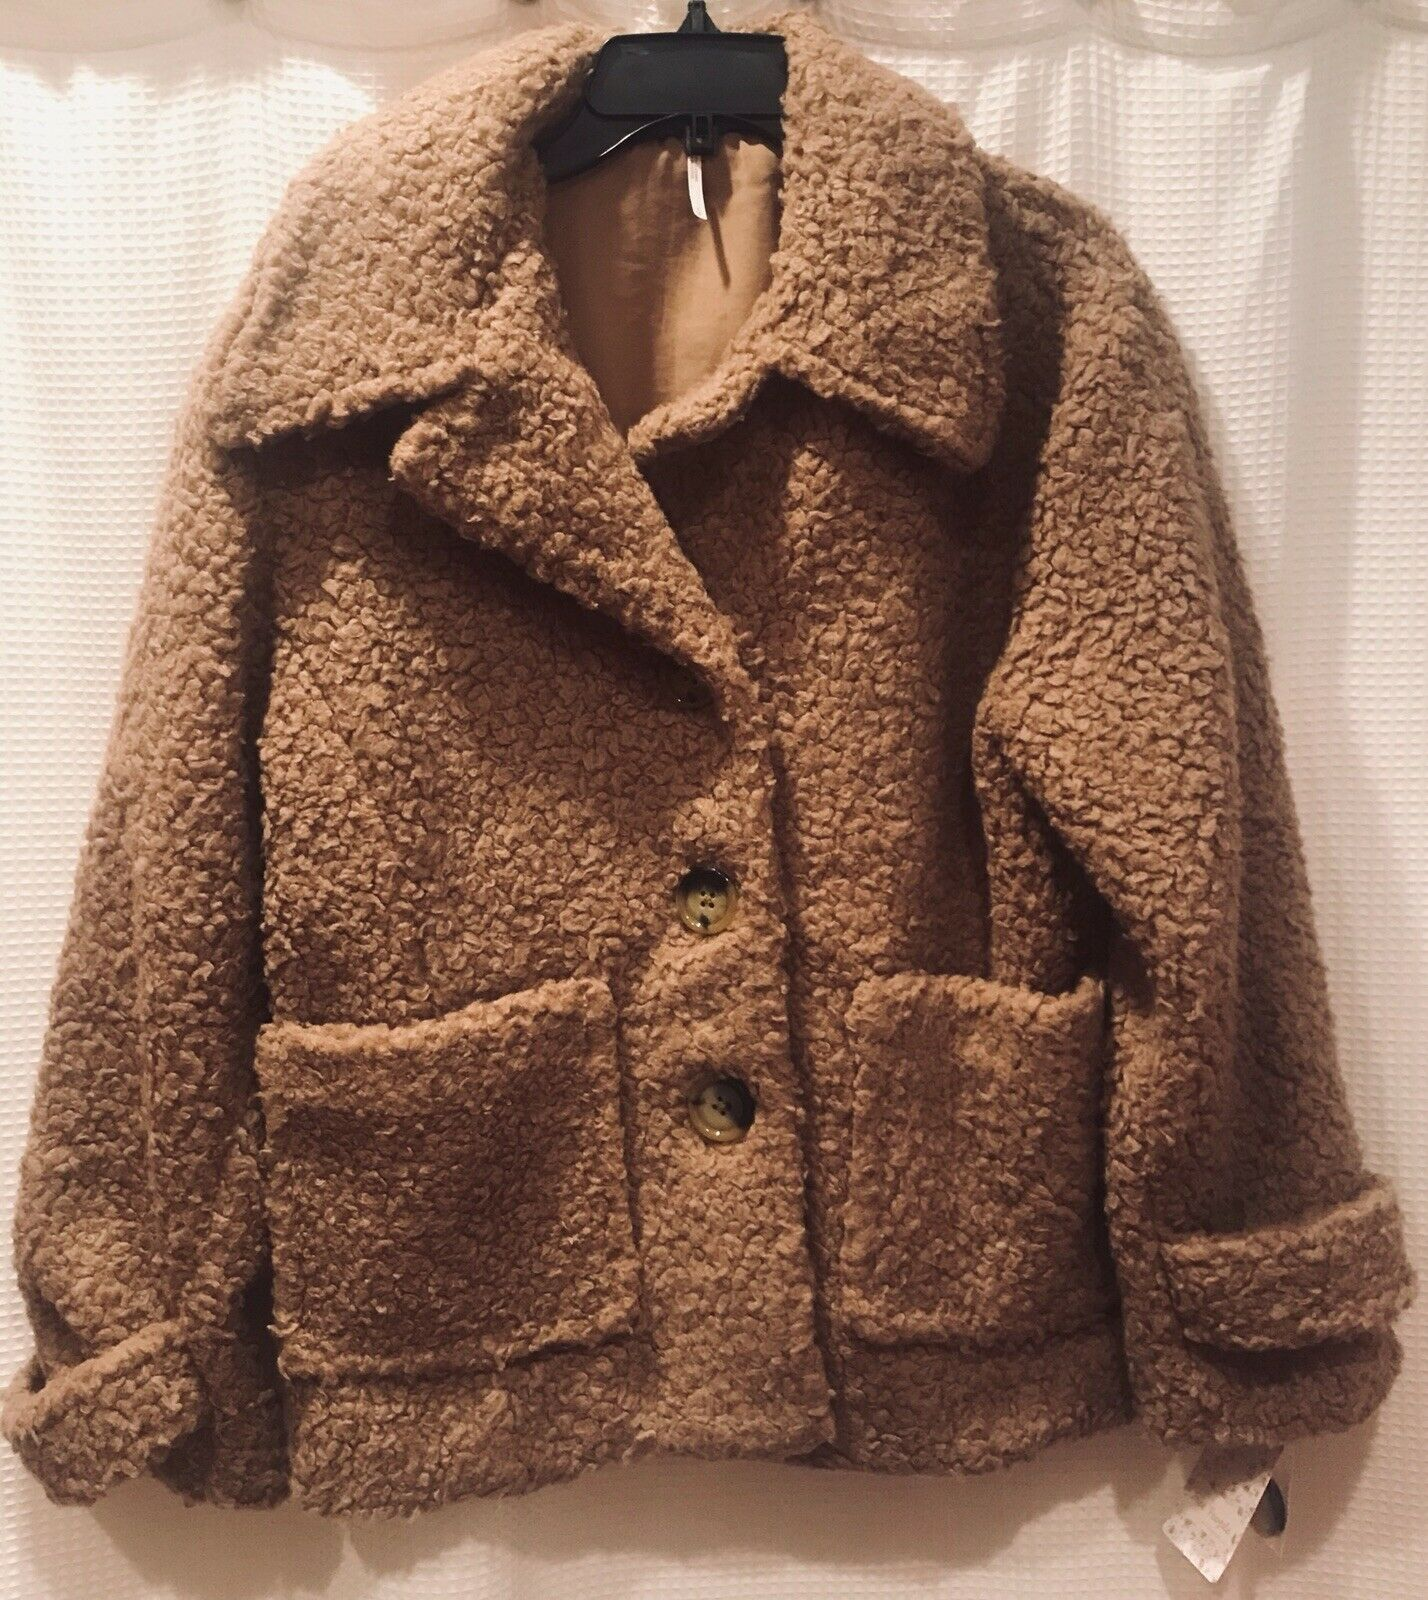 Free People Soft & Cozy Peacoat   Size S; NWT   Retail